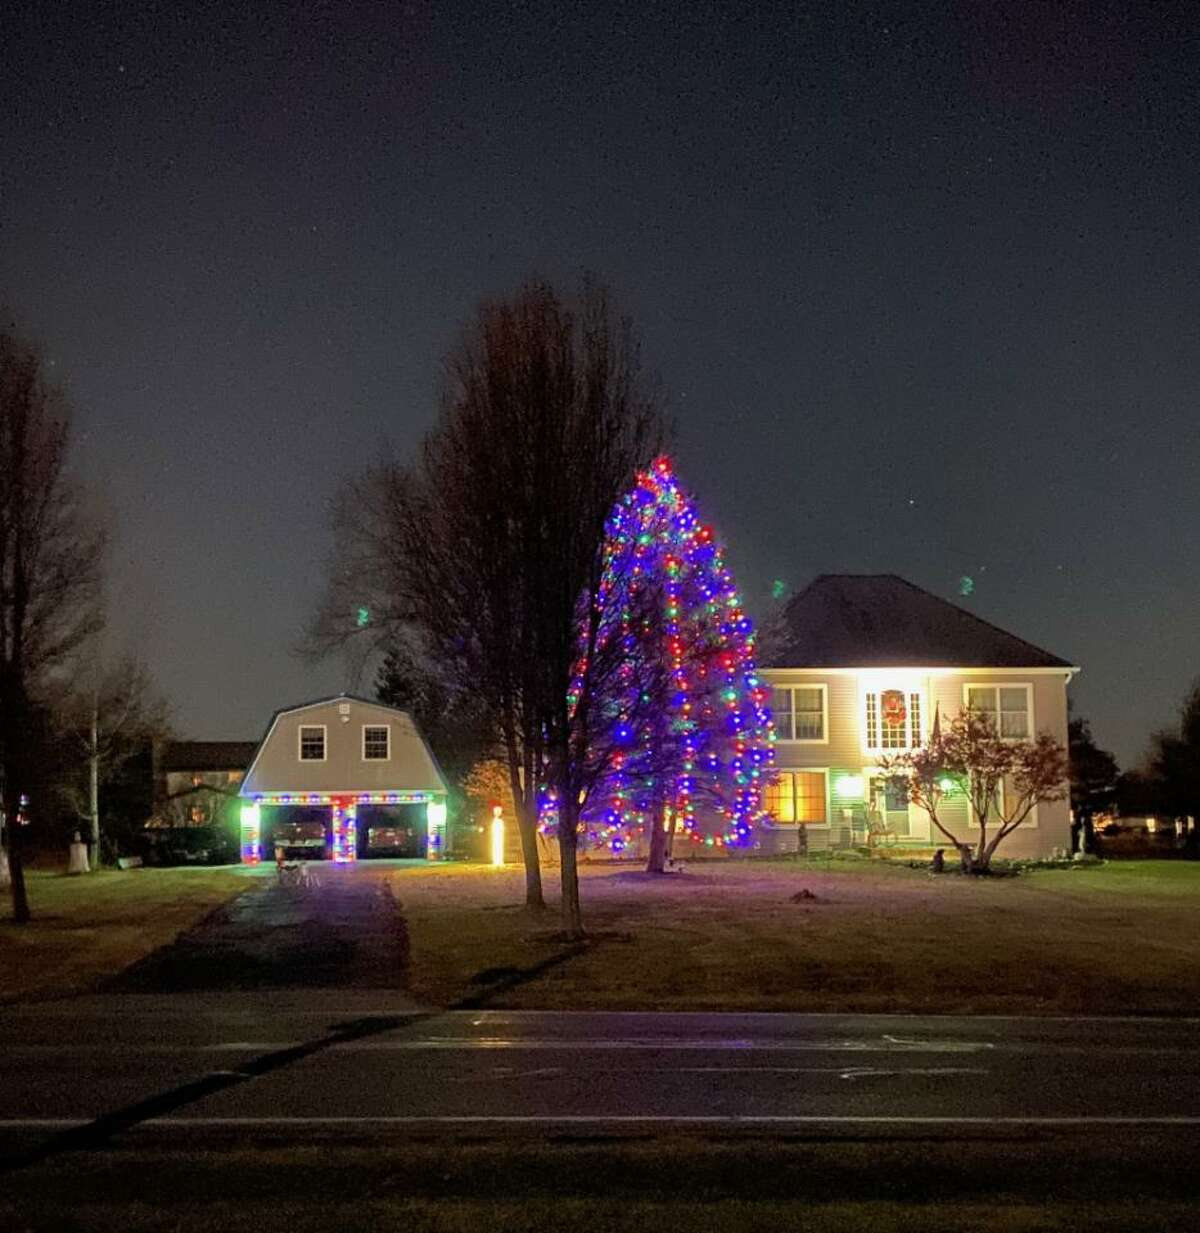 The Kohler family in Ballston Lake has been putting lights on the same tree in their front yard for at least 10 years.